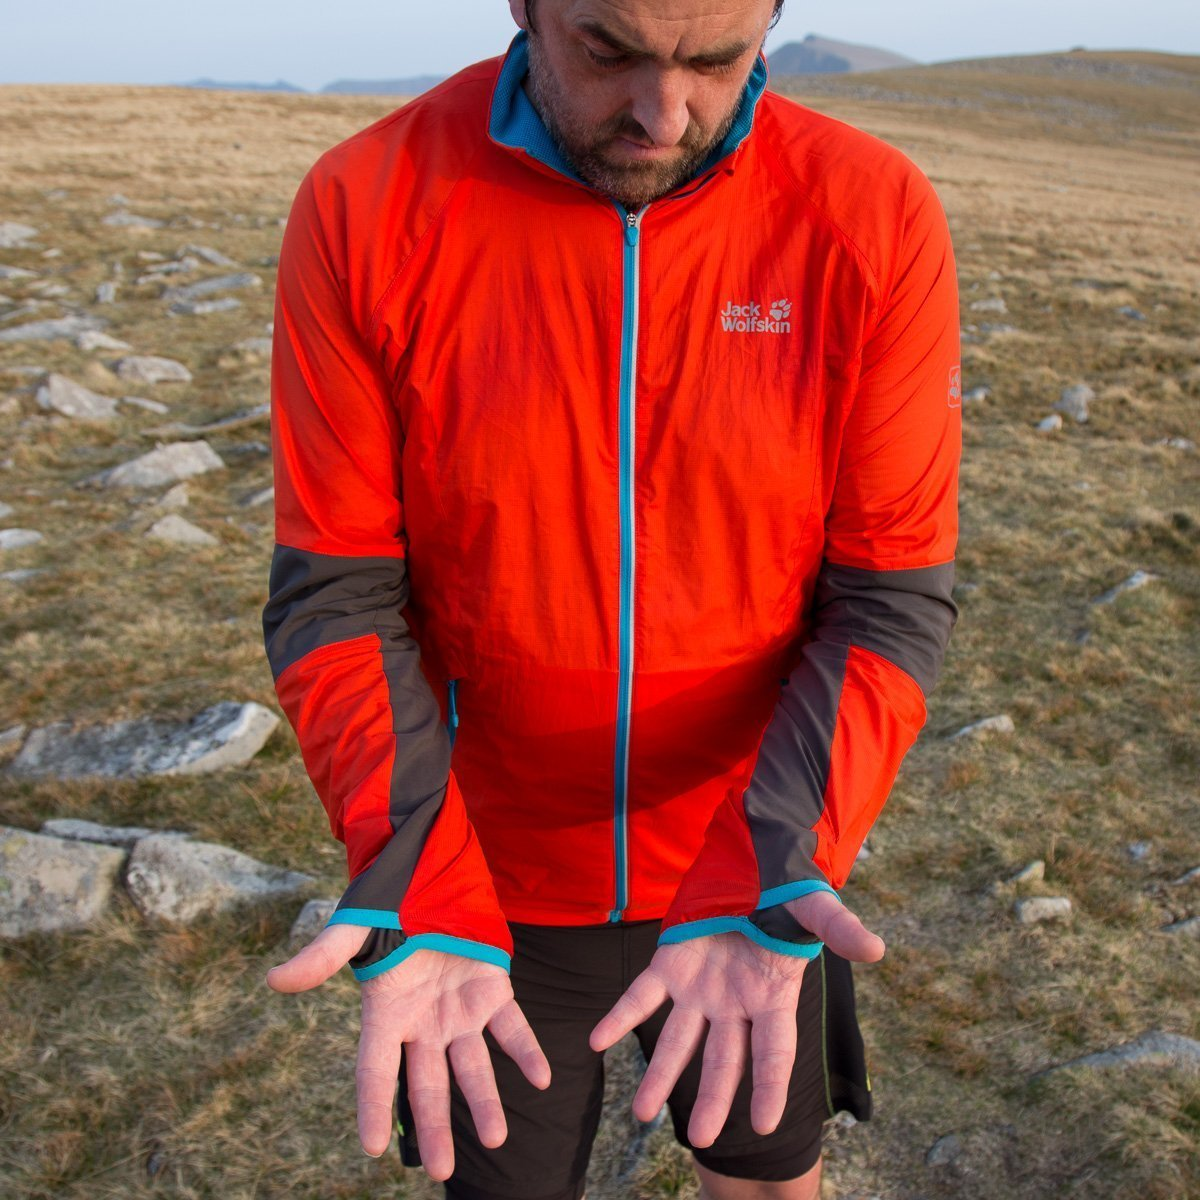 4158a5ca8c Jack Wolfskin Exhalation Flyweight Jacket Review   Mud and Routes